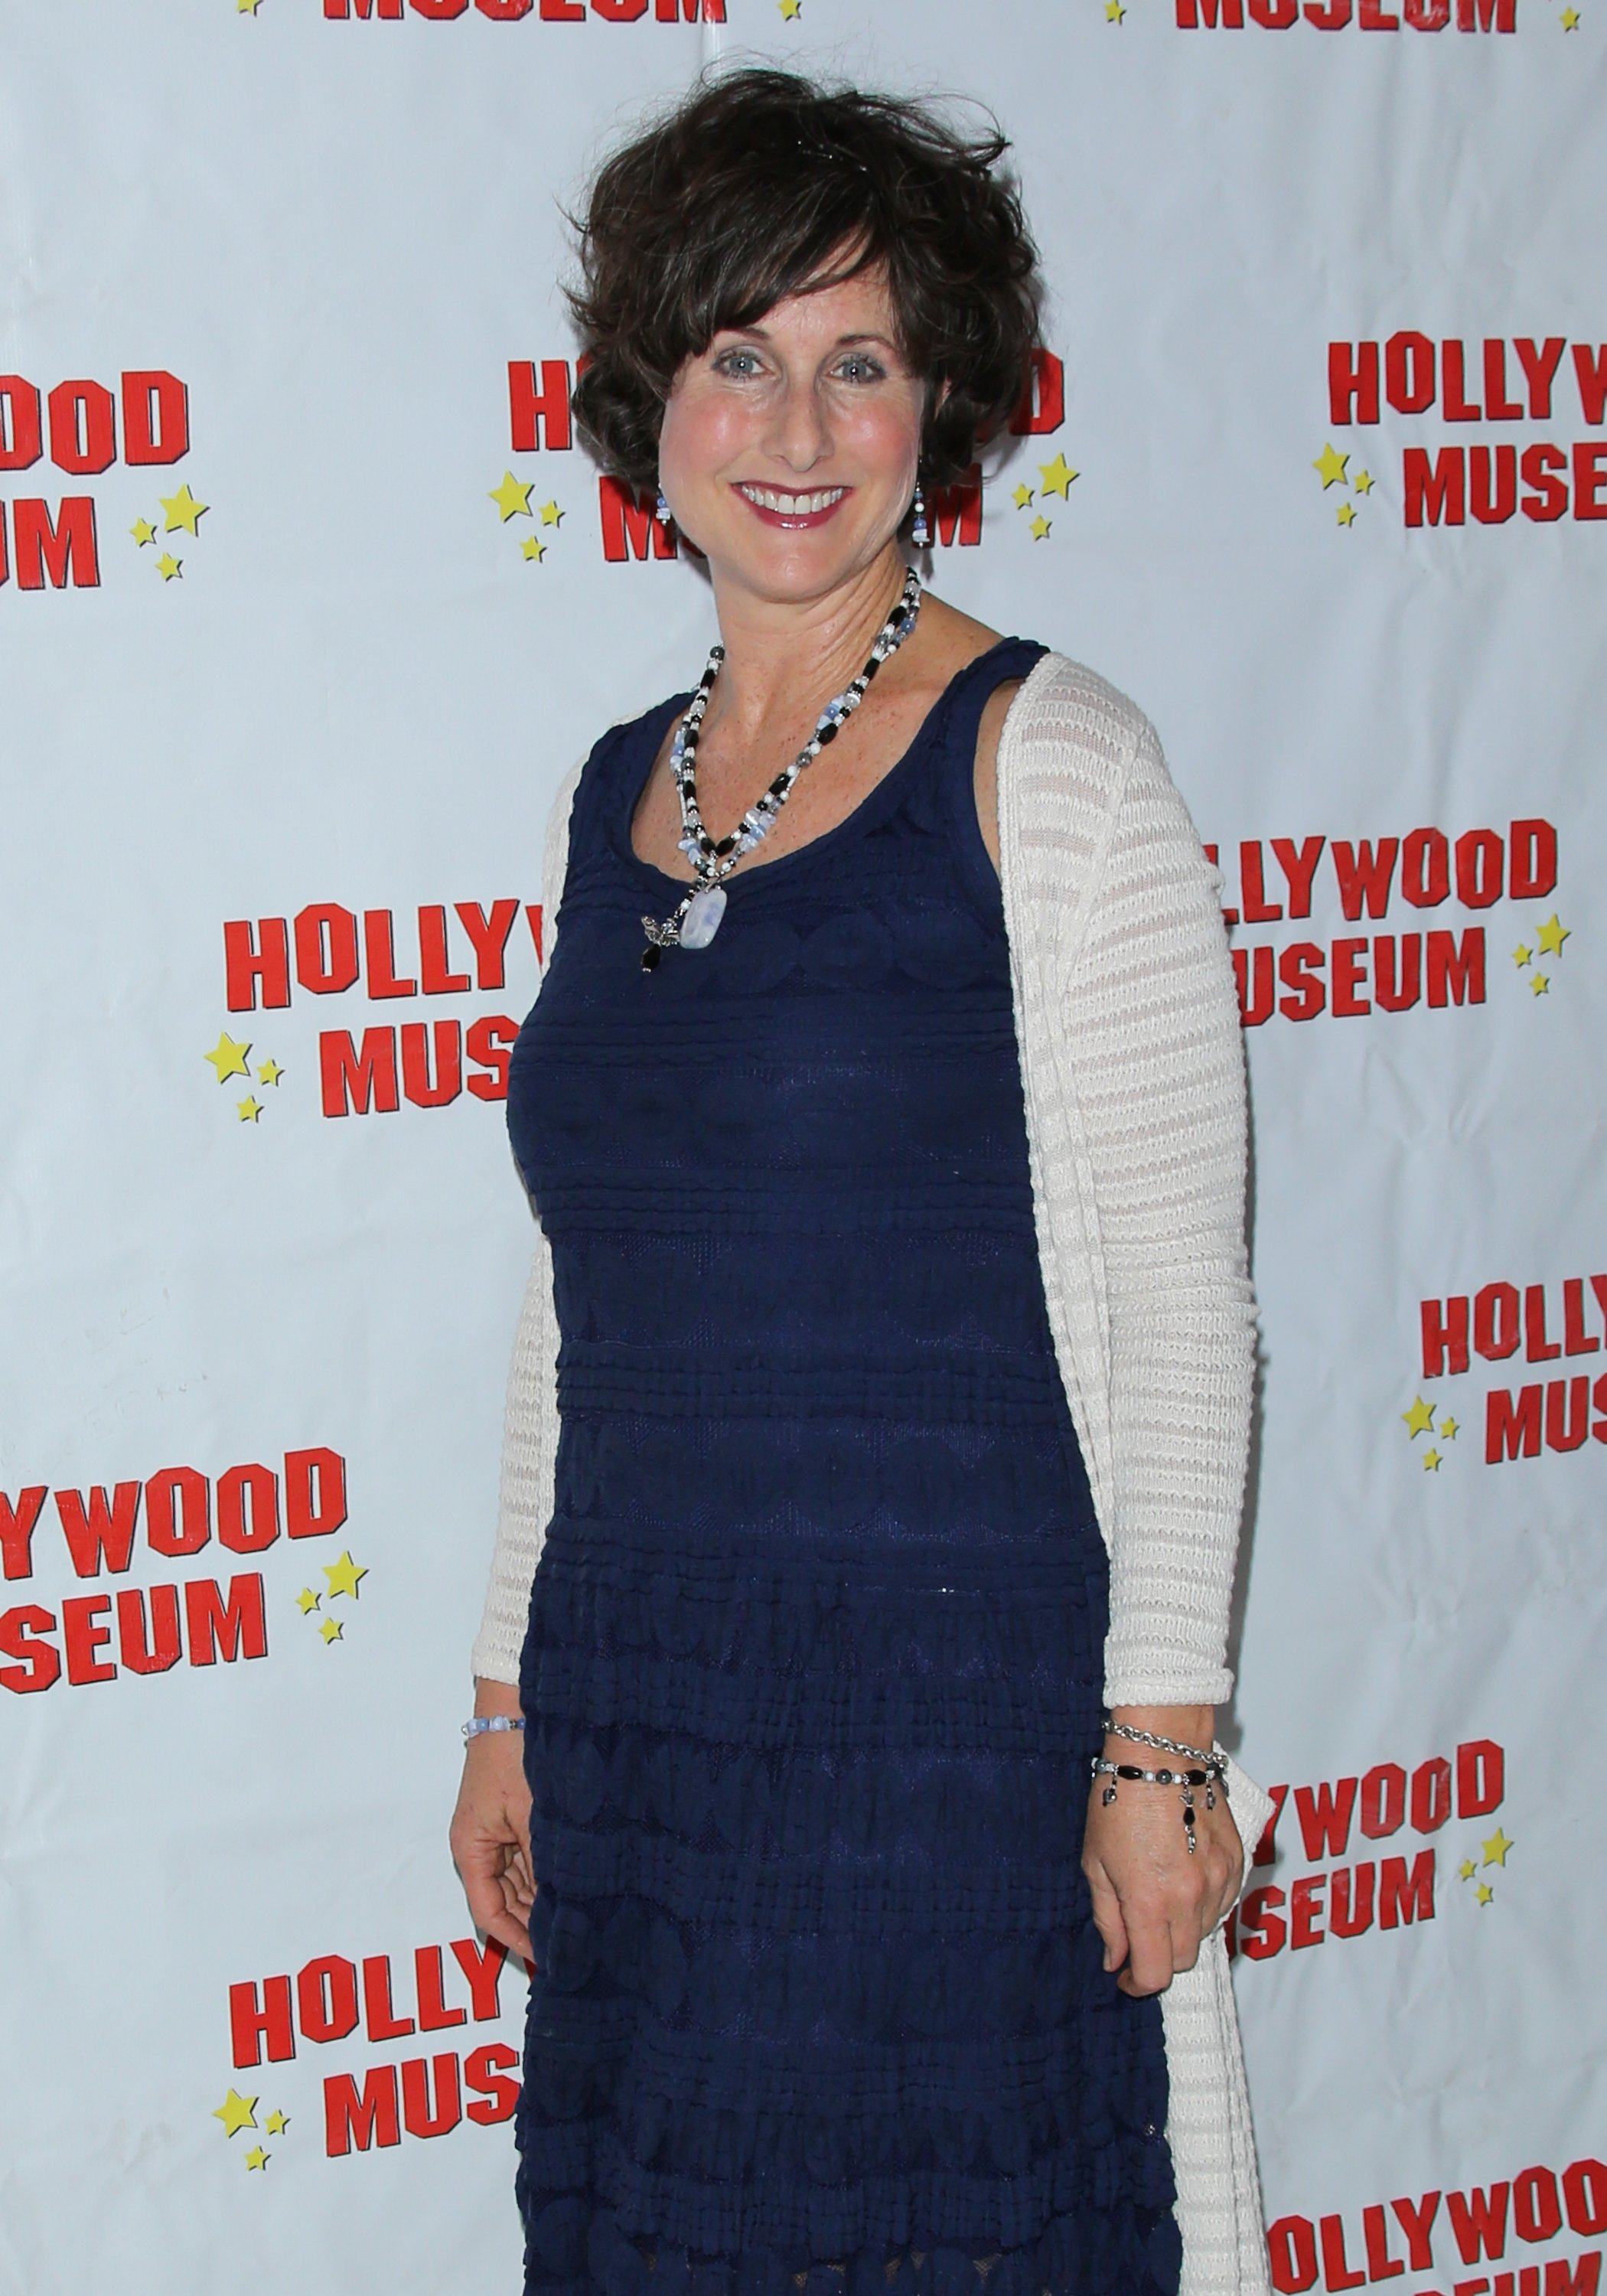 Cathy Silvers at the Hollywood Museum's celebration of entertainment awards exhibit opening on February 19, 2014 in Hollywood, California | Photo: Paul Archuleta/FilmMagic/Getty Images